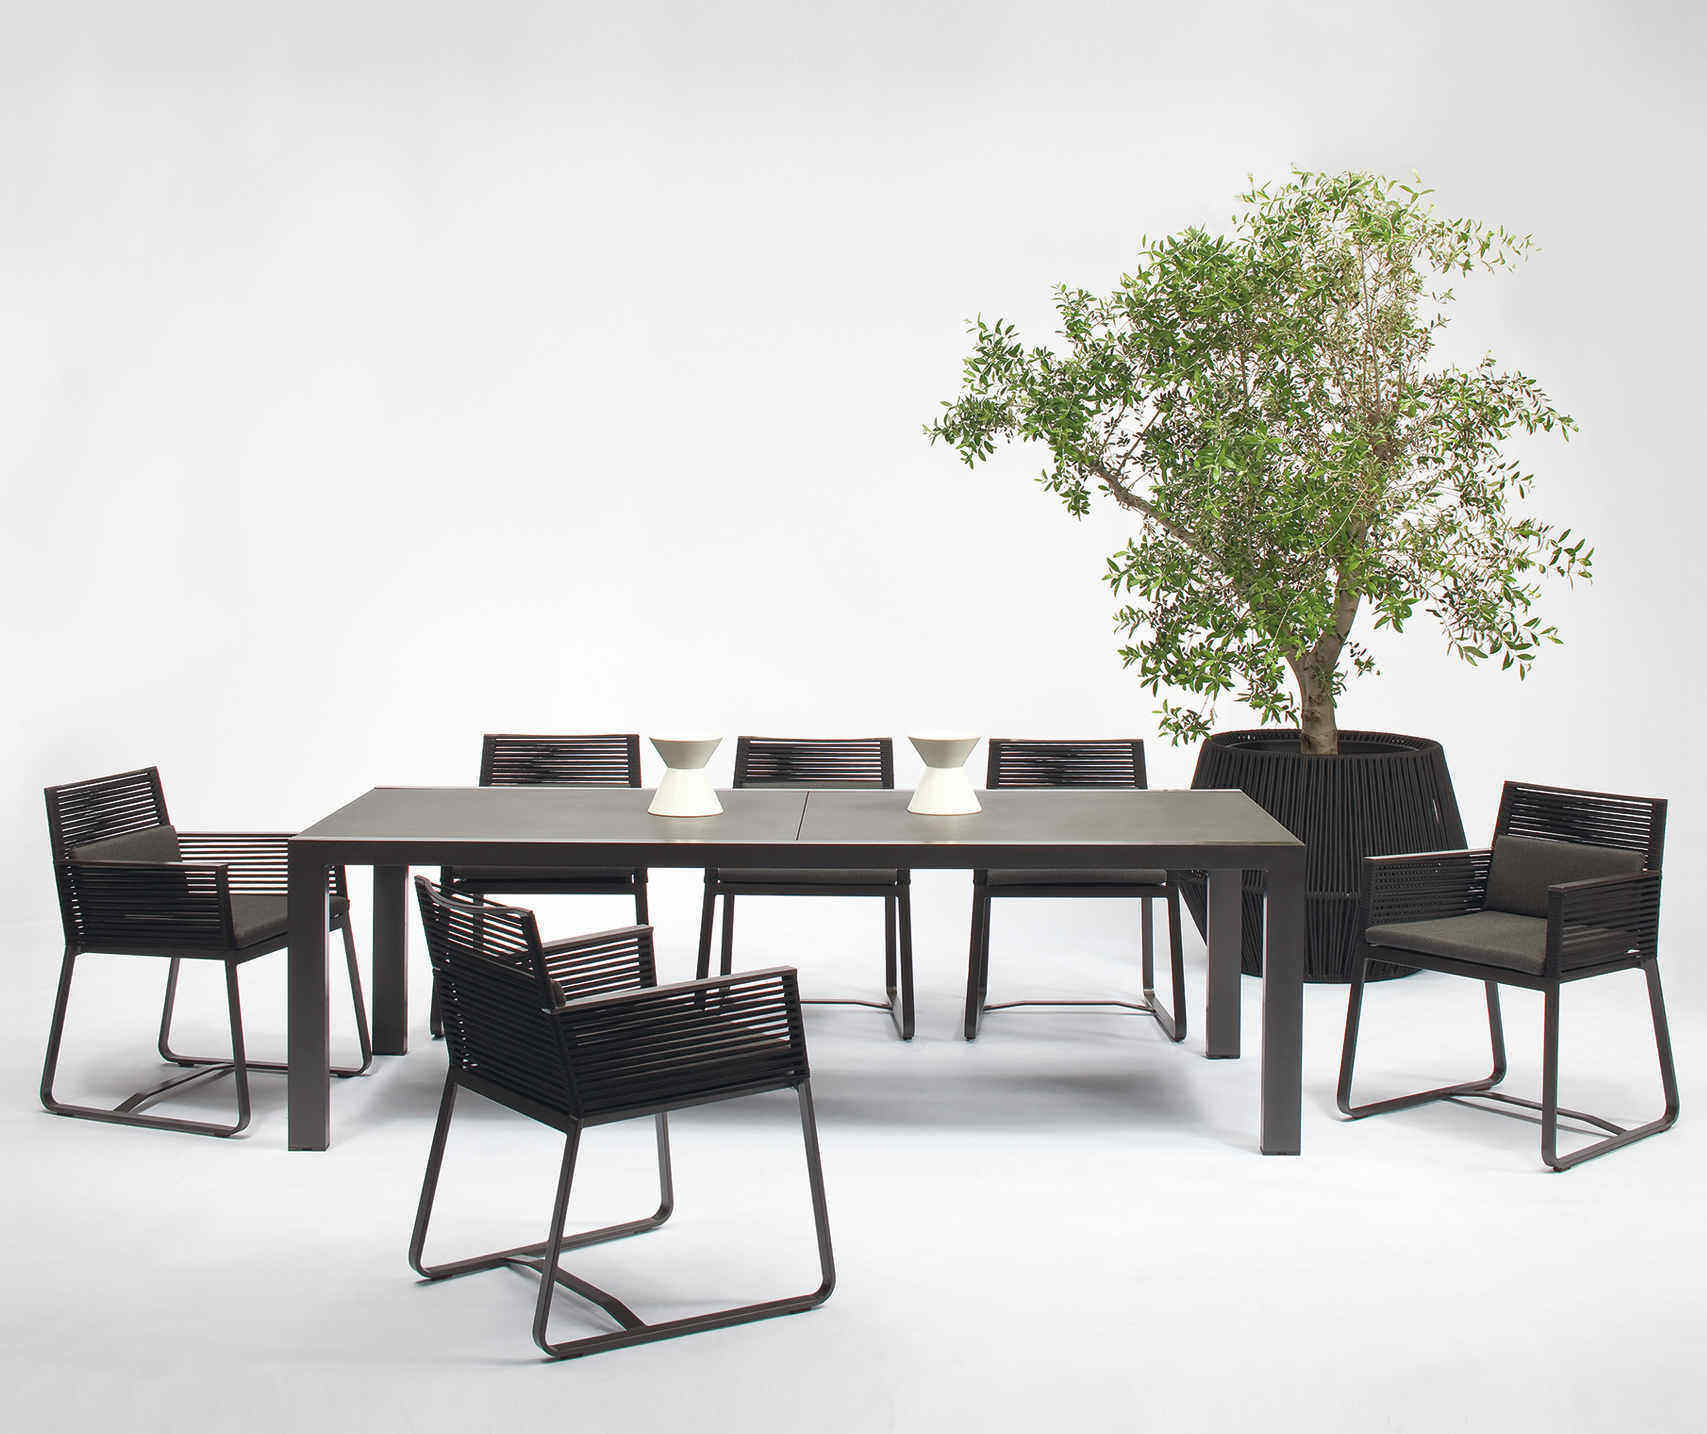 1100 2702c kettal landscape dining table kettal landscape dining collection